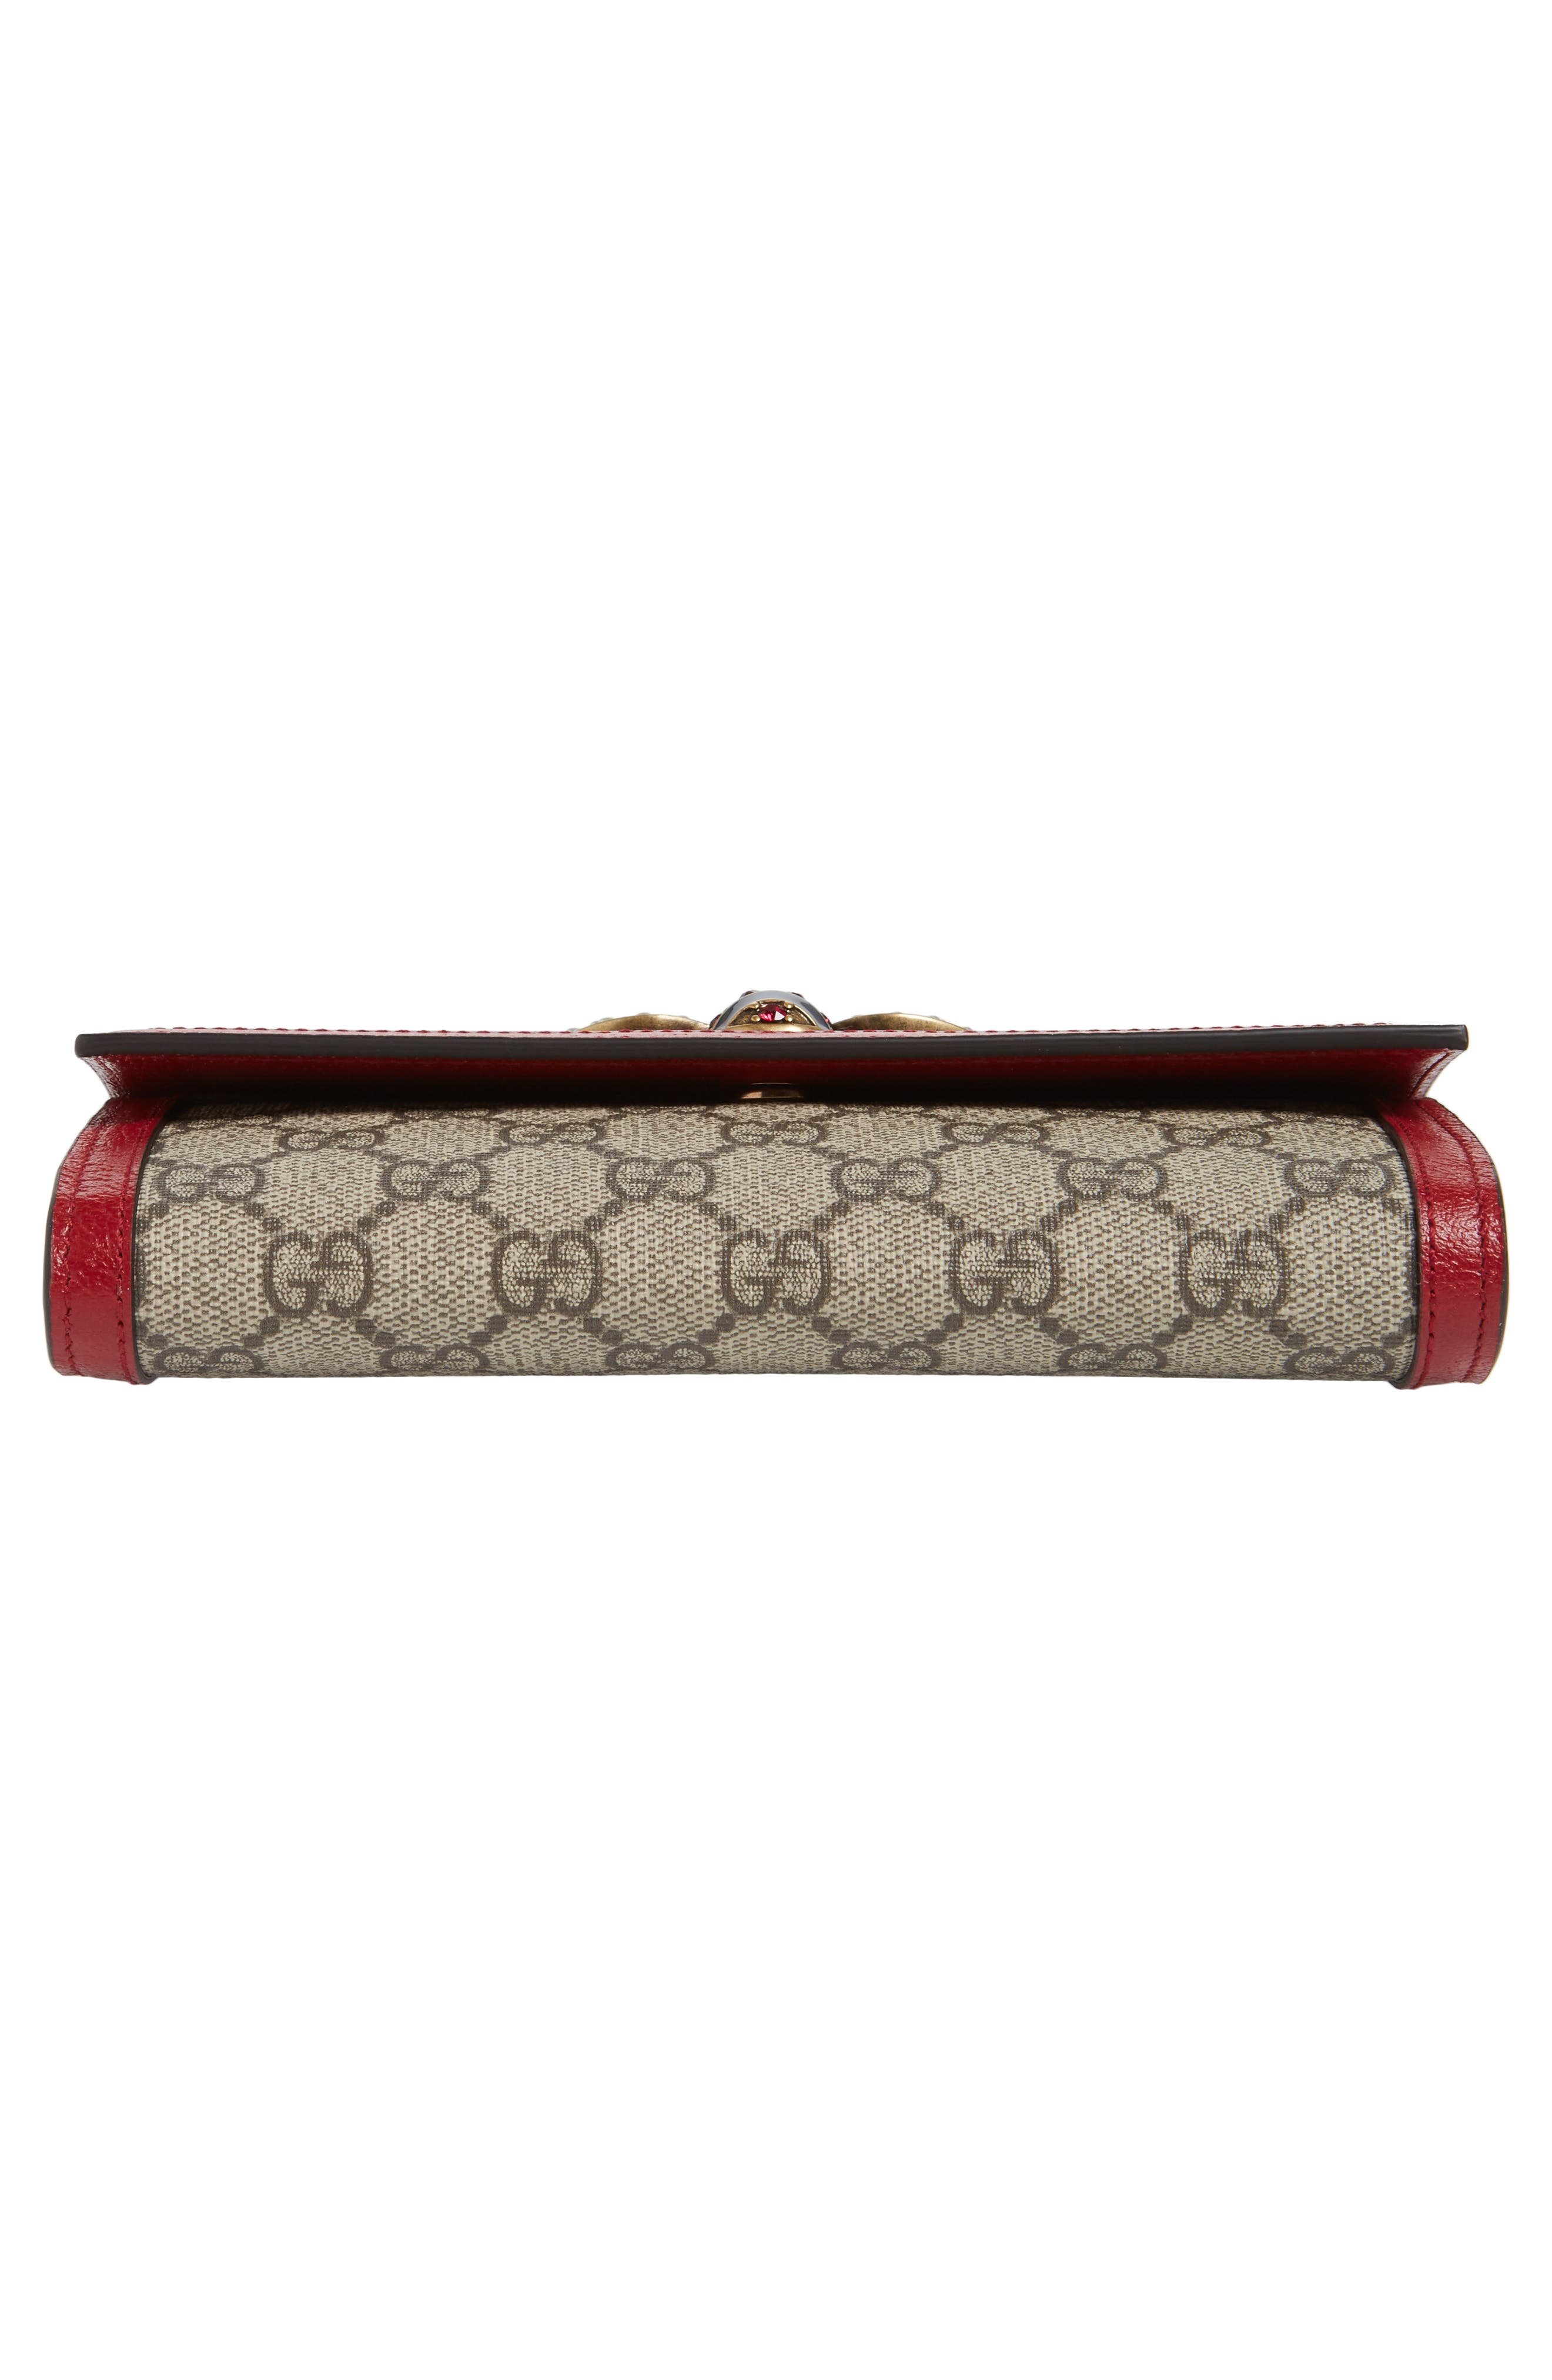 Queen Margaret GG Supreme Canvas Flap Wallet,                             Alternate thumbnail 6, color,                             BEIGE EBONY/ BLUE RED/ RUBY